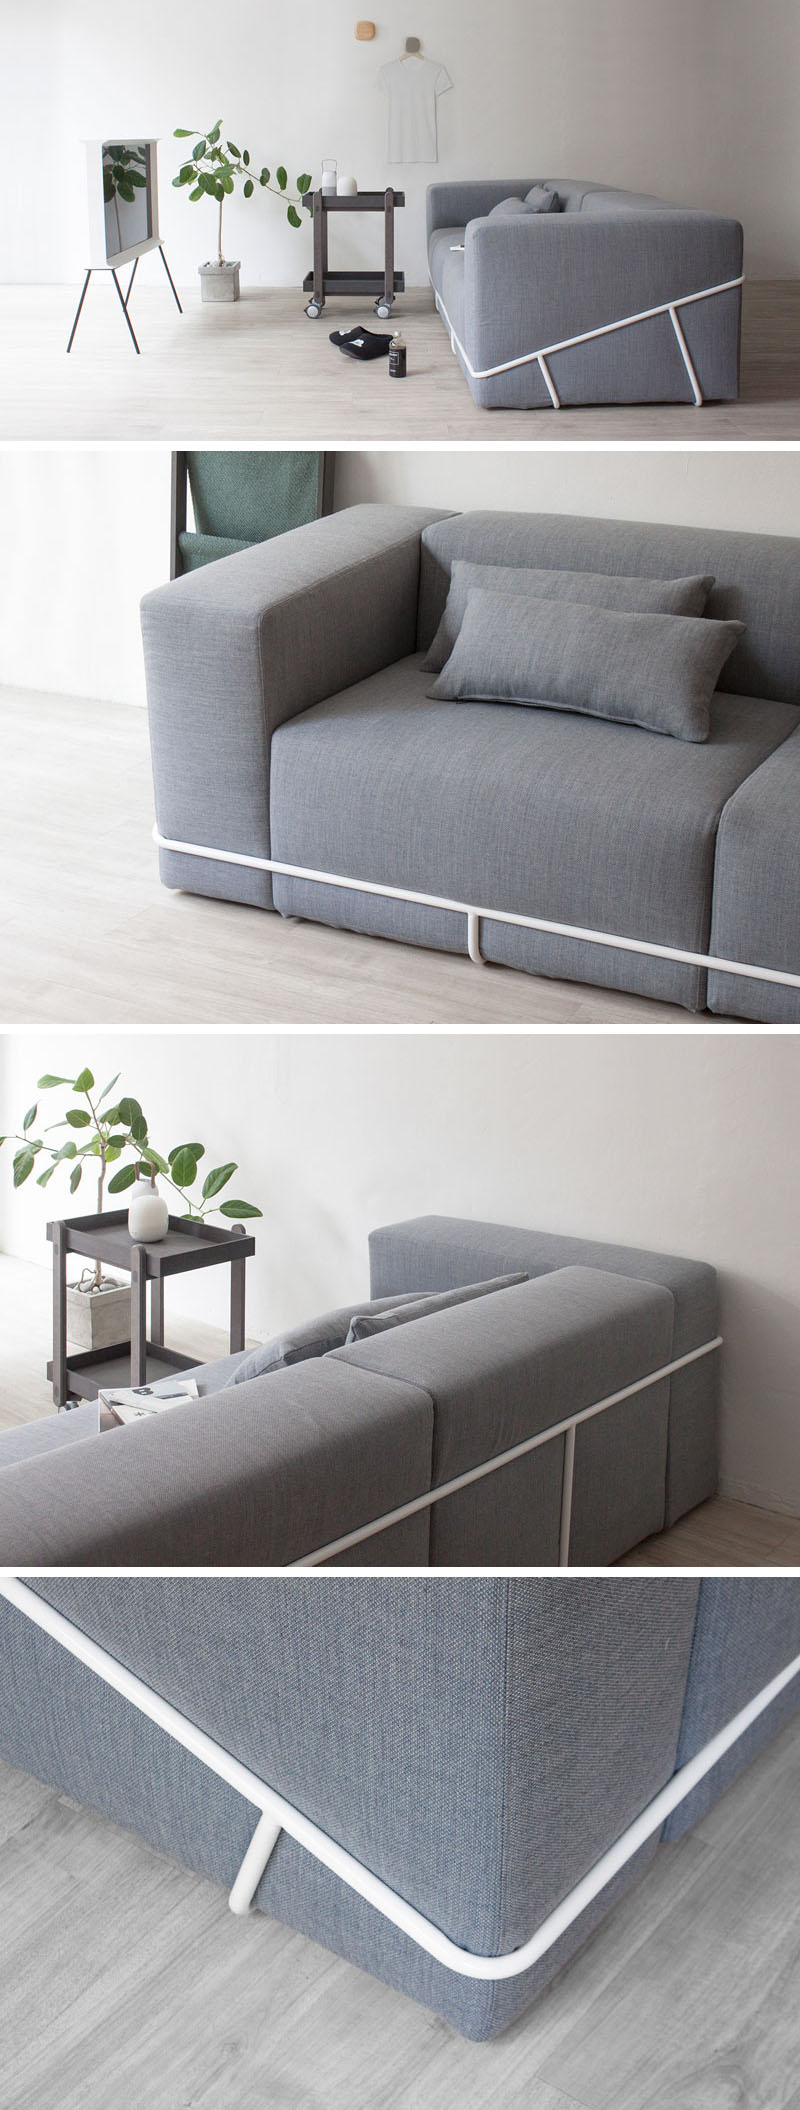 modern-grey-couch-sofa-white-metal-base-130617-1034-02